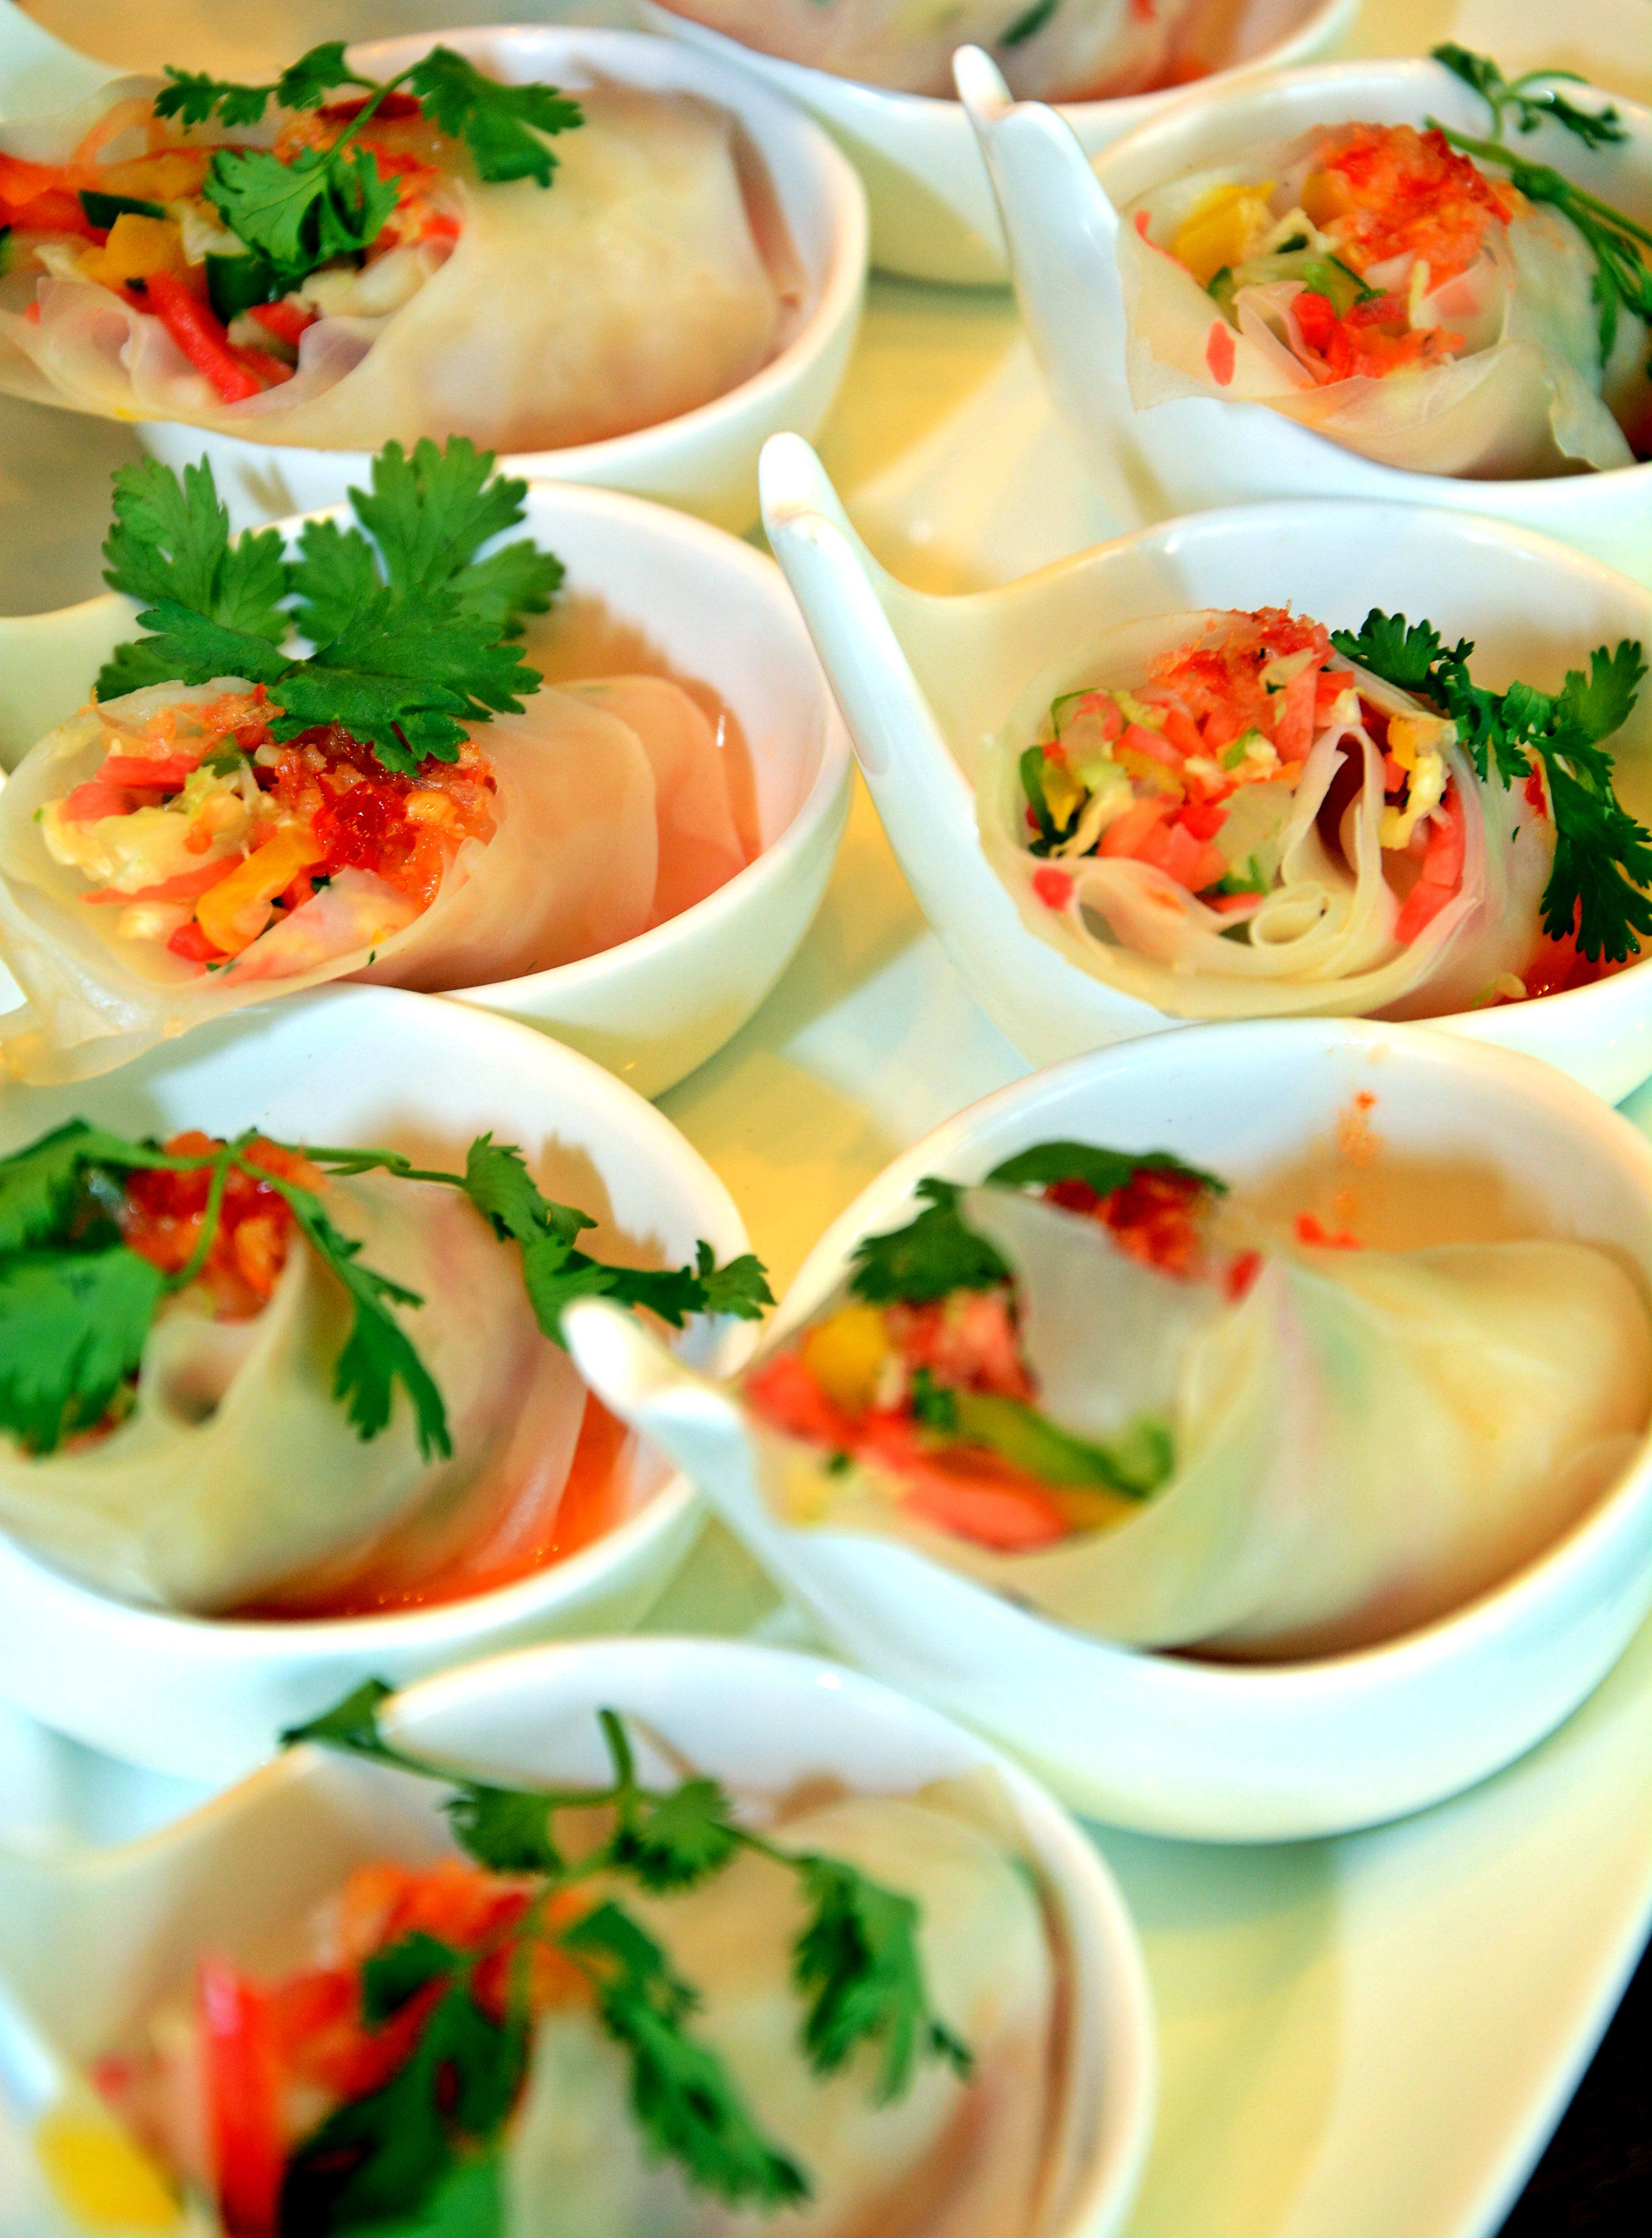 Indulge in the oriental favourite - Rice Paper Roll!